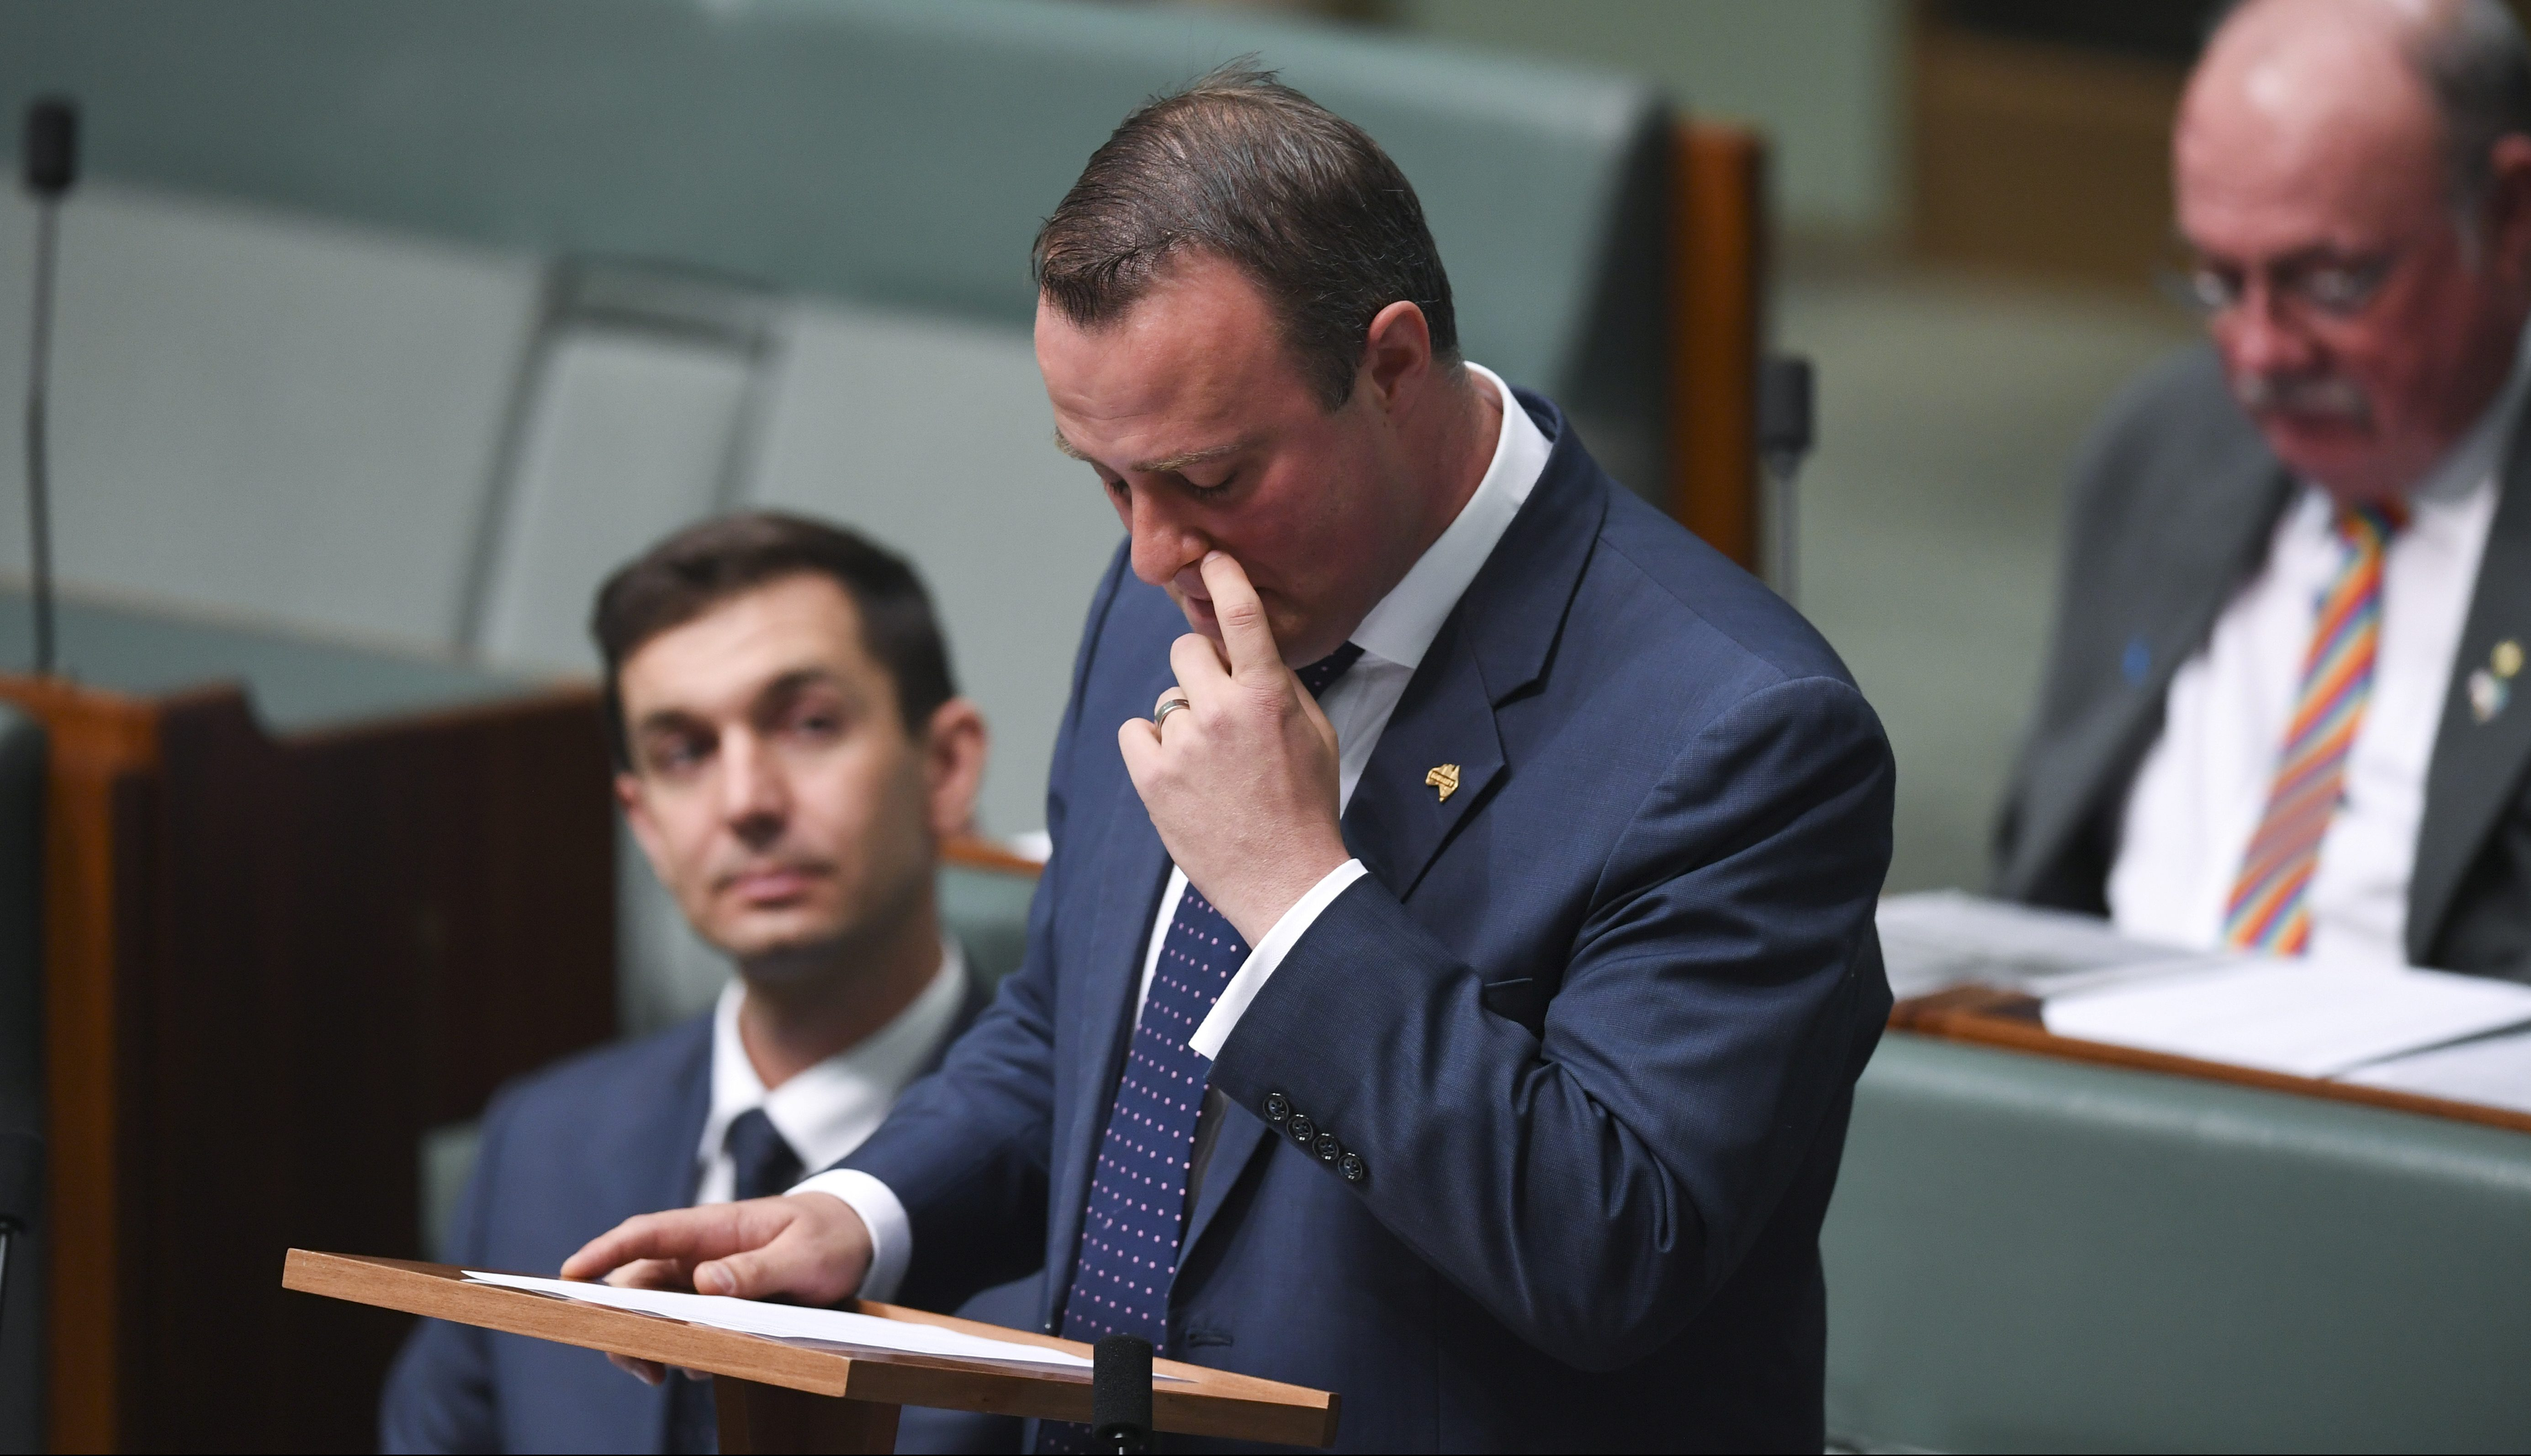 Liberal MP Tim Wilson reacts after proposing to his partner Ryan Bolger during debate of the Marriage Amendment bill in the House of Representatives at Parliament House in Canberra